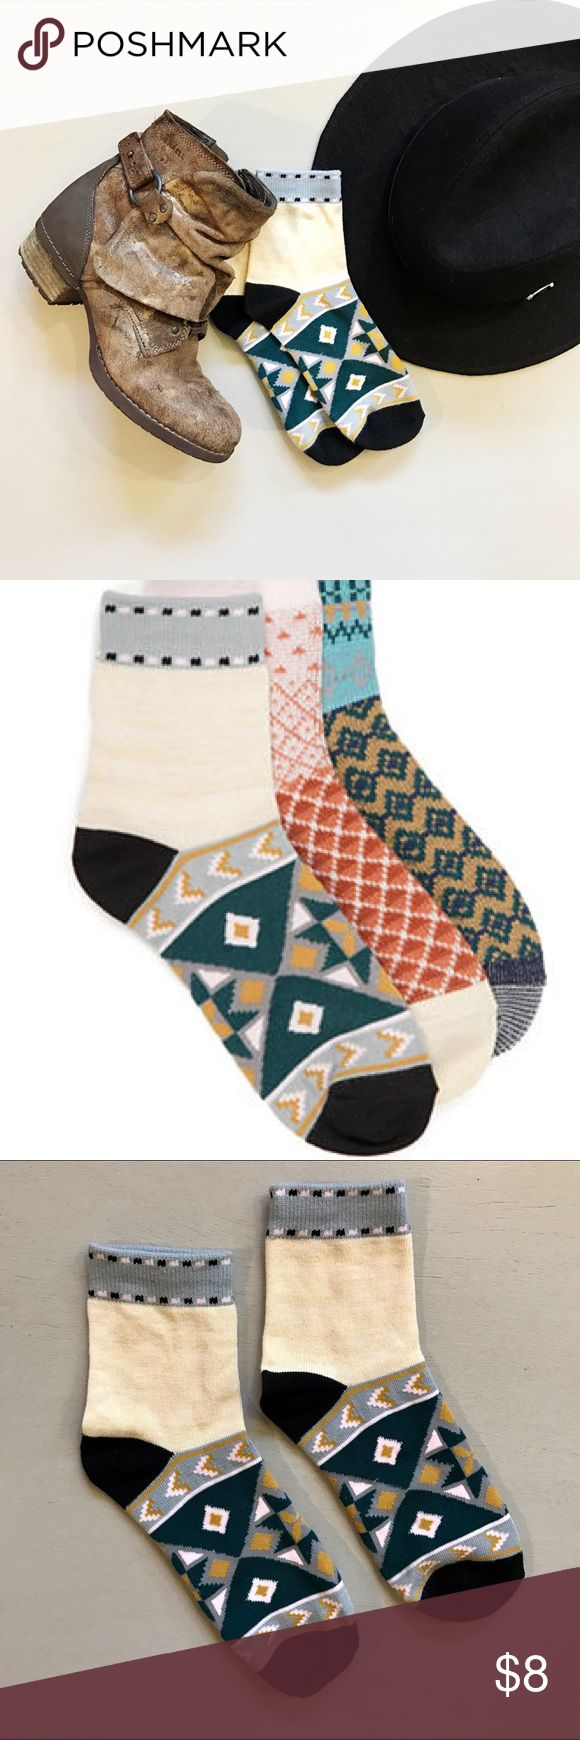 Free People Paradise Cove Ankle Socks 1 pair of Paradise Cove Ankle Socks from Free People.  100% completely brand new and unworn.  NWOT.  Super soft and snuggly.  Perfect heights for wearing with boots!  Next-day shipping - Thanks for looking! ❤ Free People Other